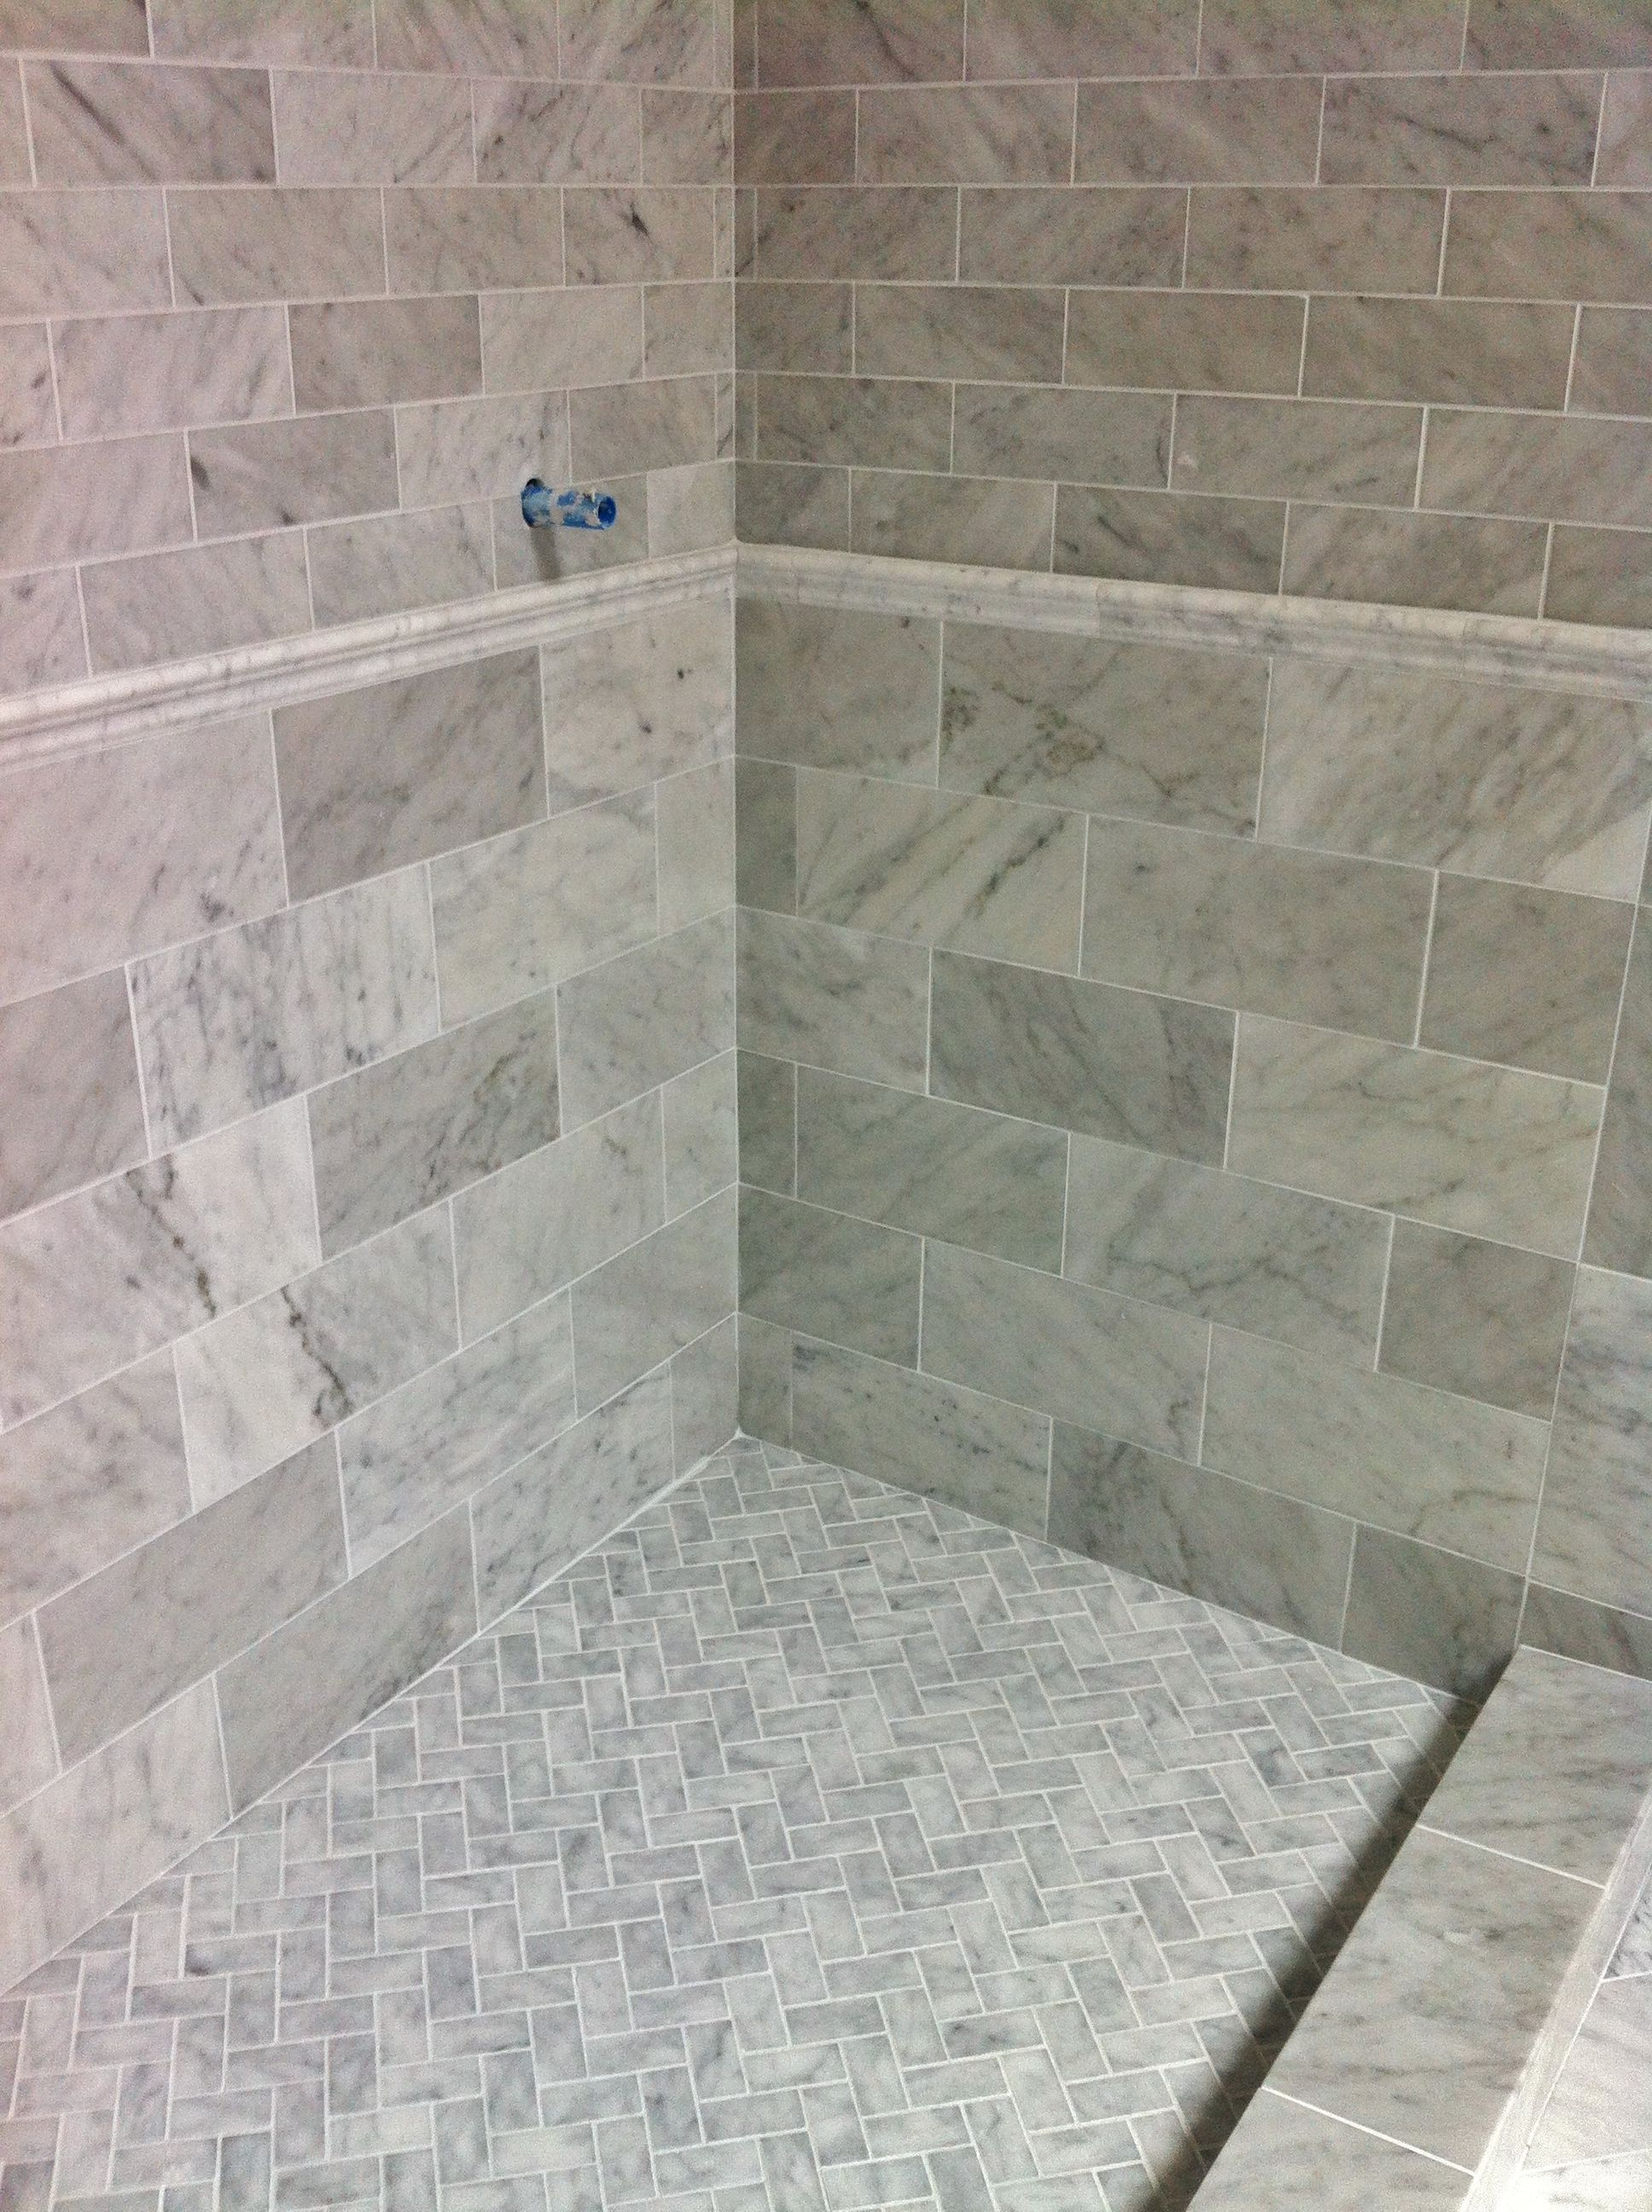 Beau Venetino Marble Shower Walls, Floor And Chair Rail Tile In This Master  Bathroom. Tile